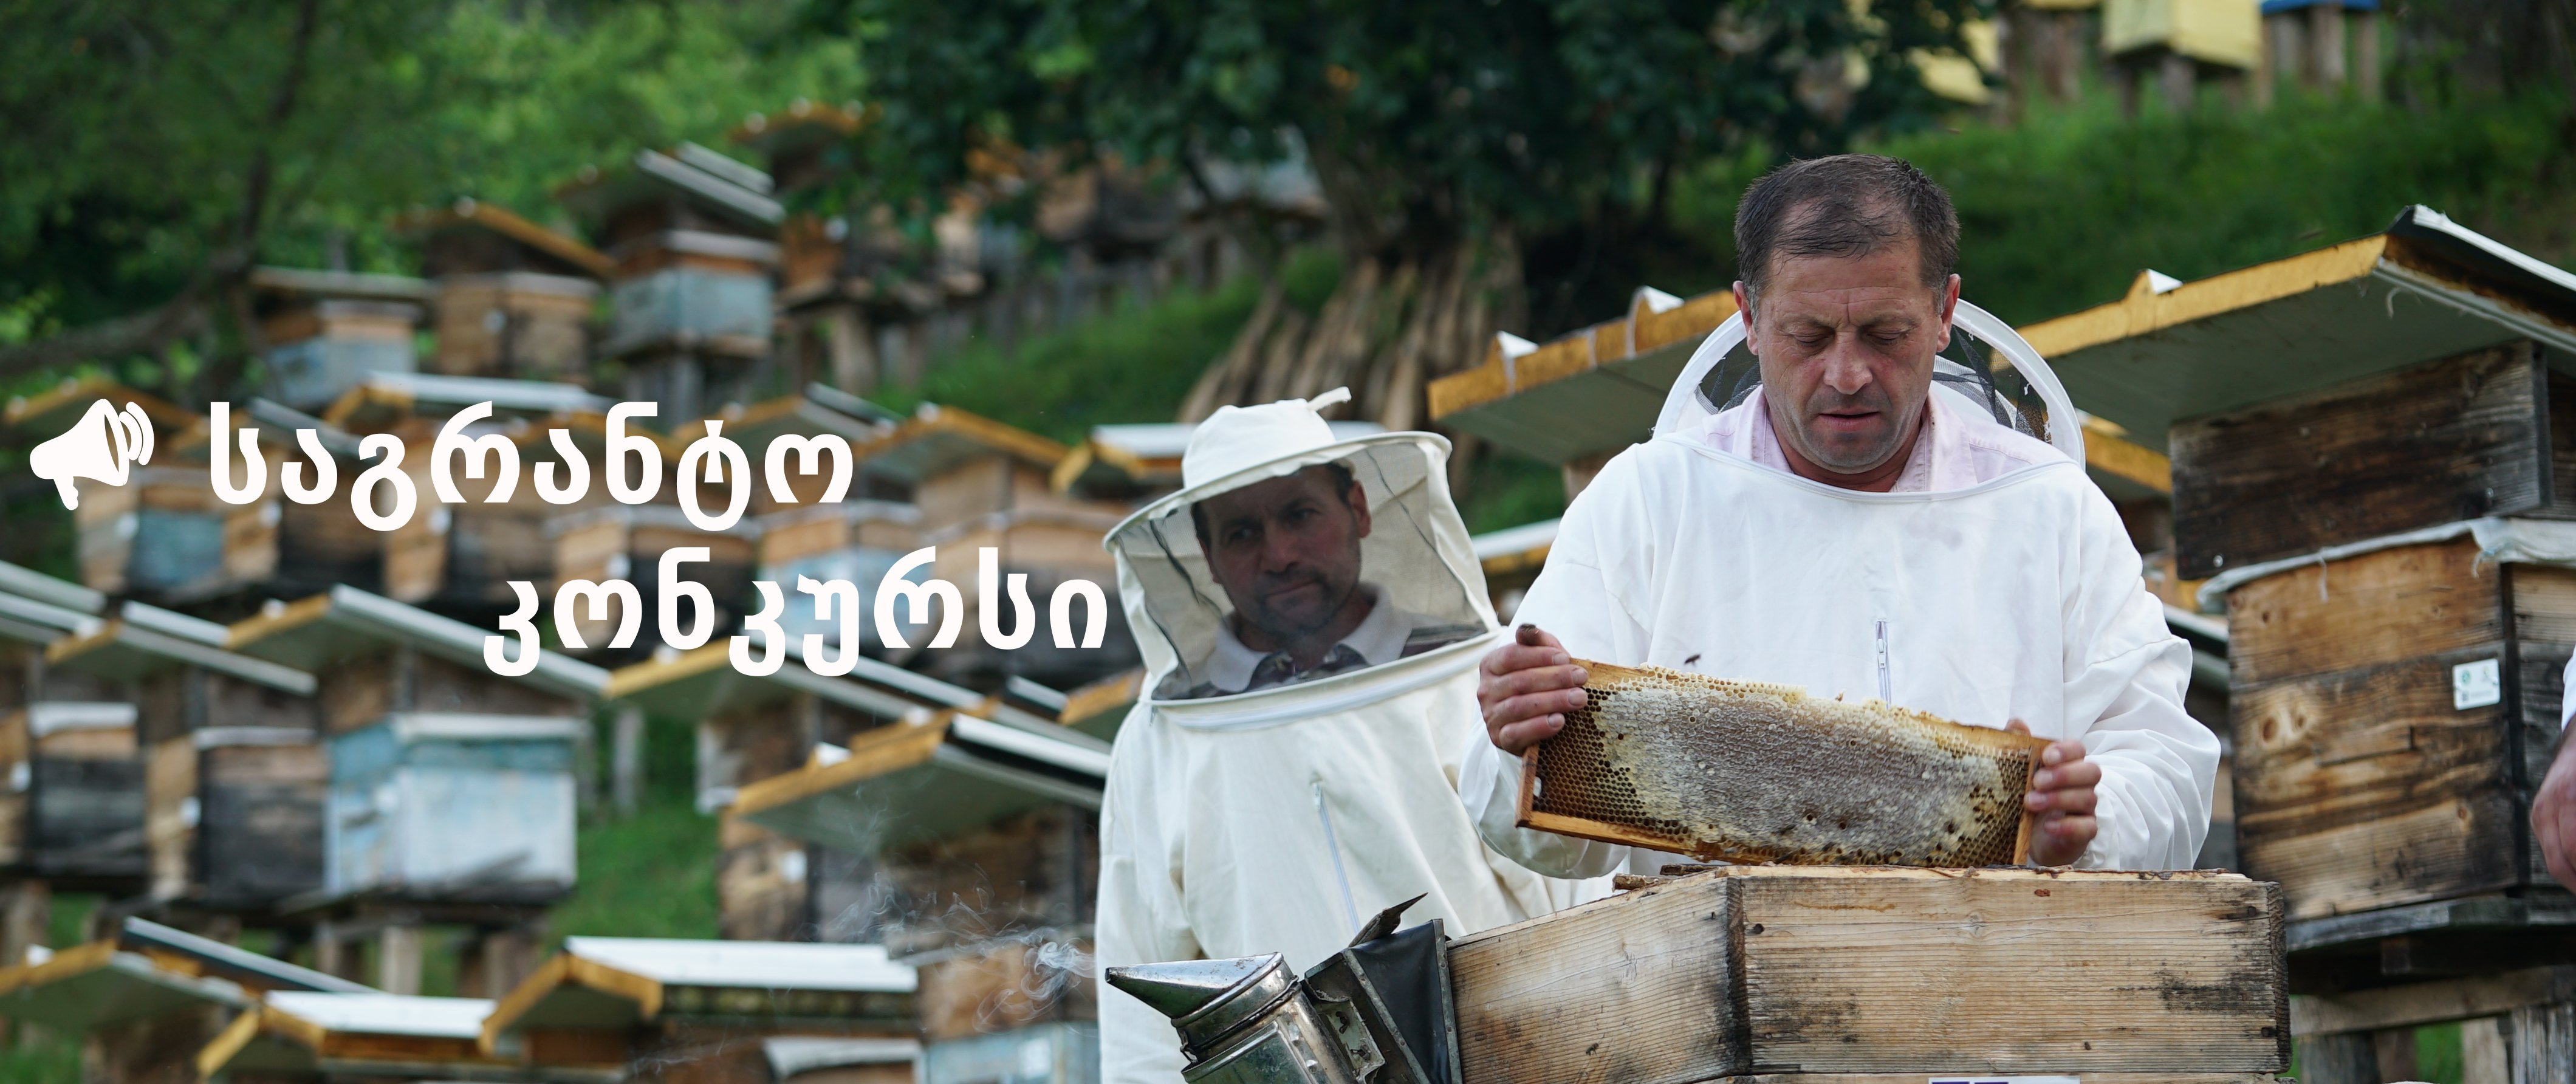 Sustainable Development of Beekeeping in Georgia - Closed Grant Call